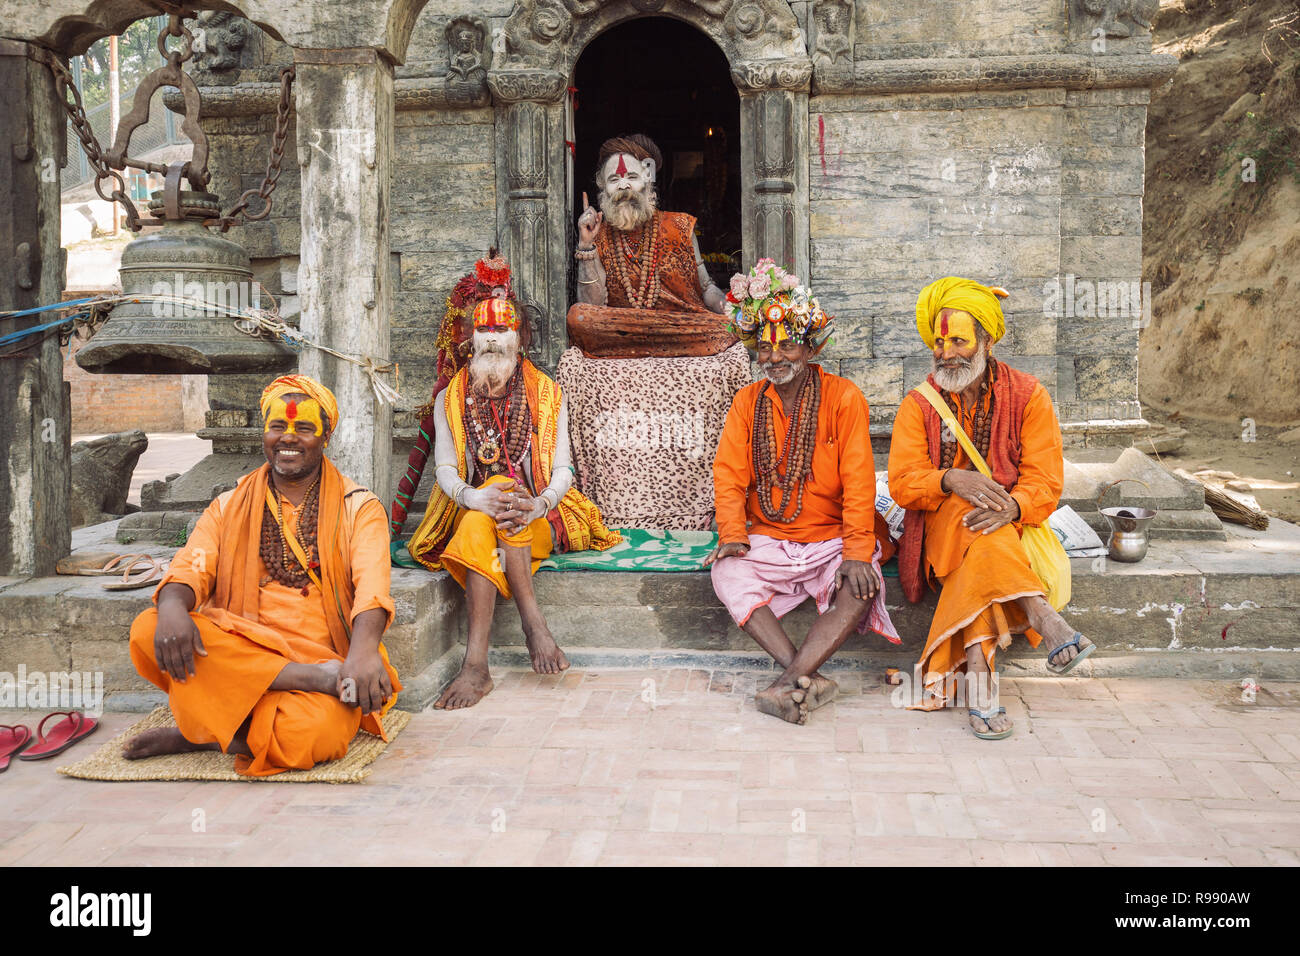 Sadhus posing with tourist at Pashupatinath Temple. In Hinduism, the sadhu is solely dedicated to achieving moksha through meditation and contemplatio - Stock Image